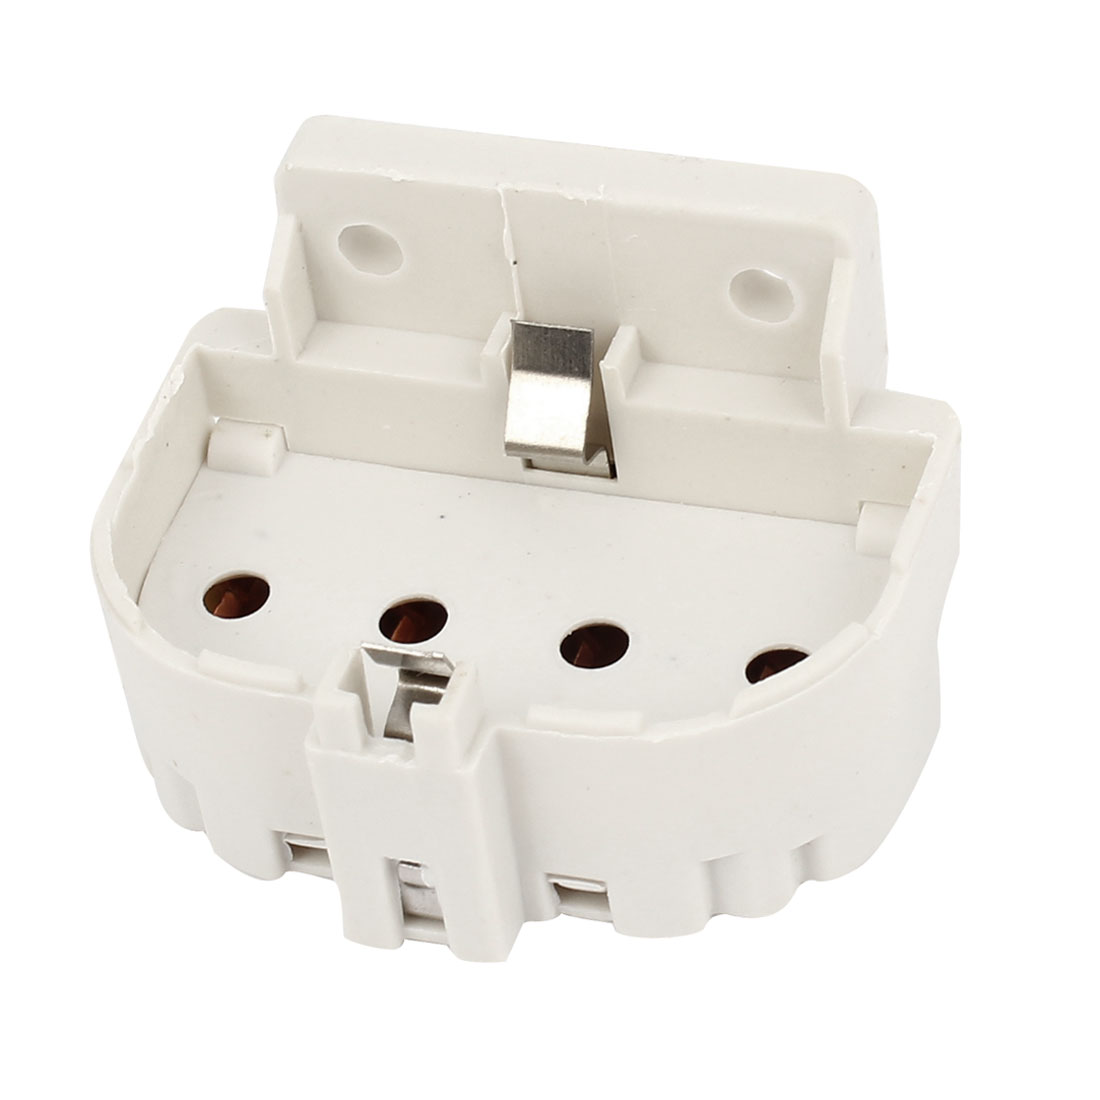 AC 220V 4-pin 2G11 Socket Energy Saving Lamp Holder Adapter